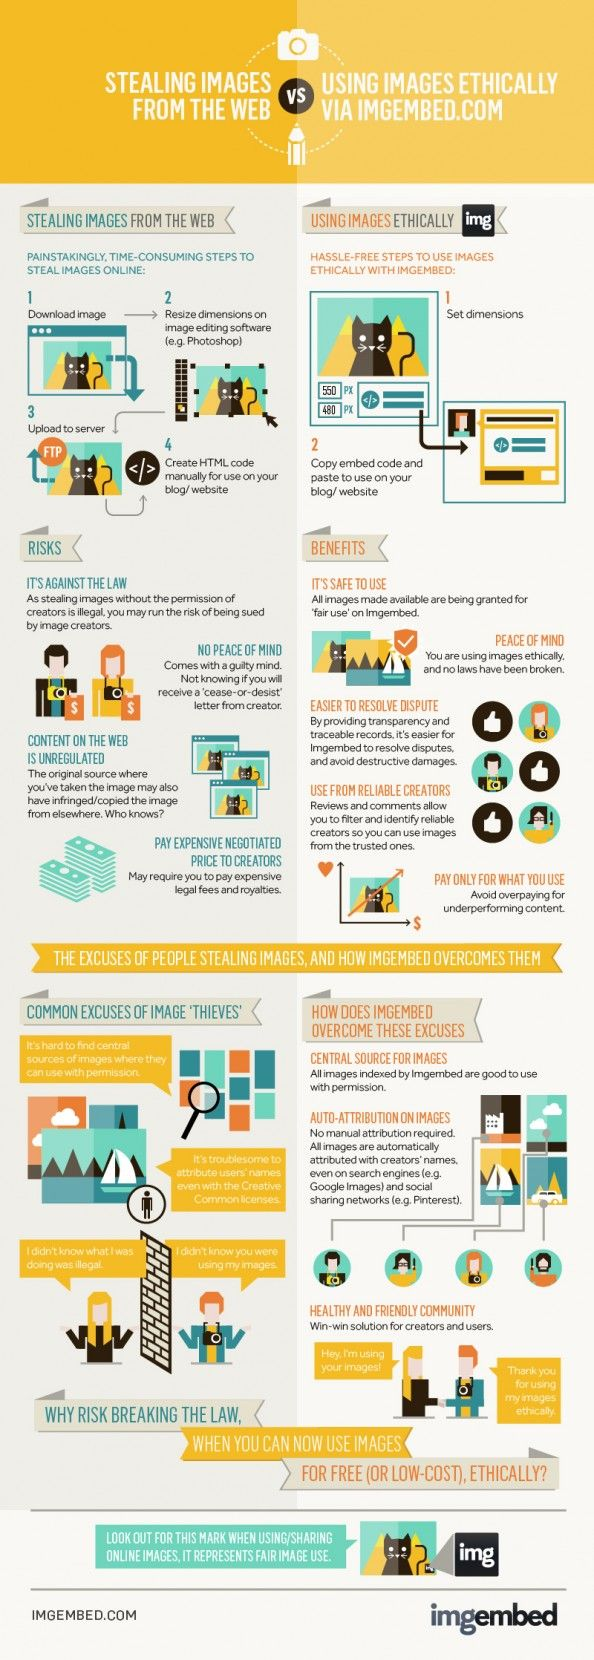 Stealing Images Online VS Using Images Fairly #Infographic